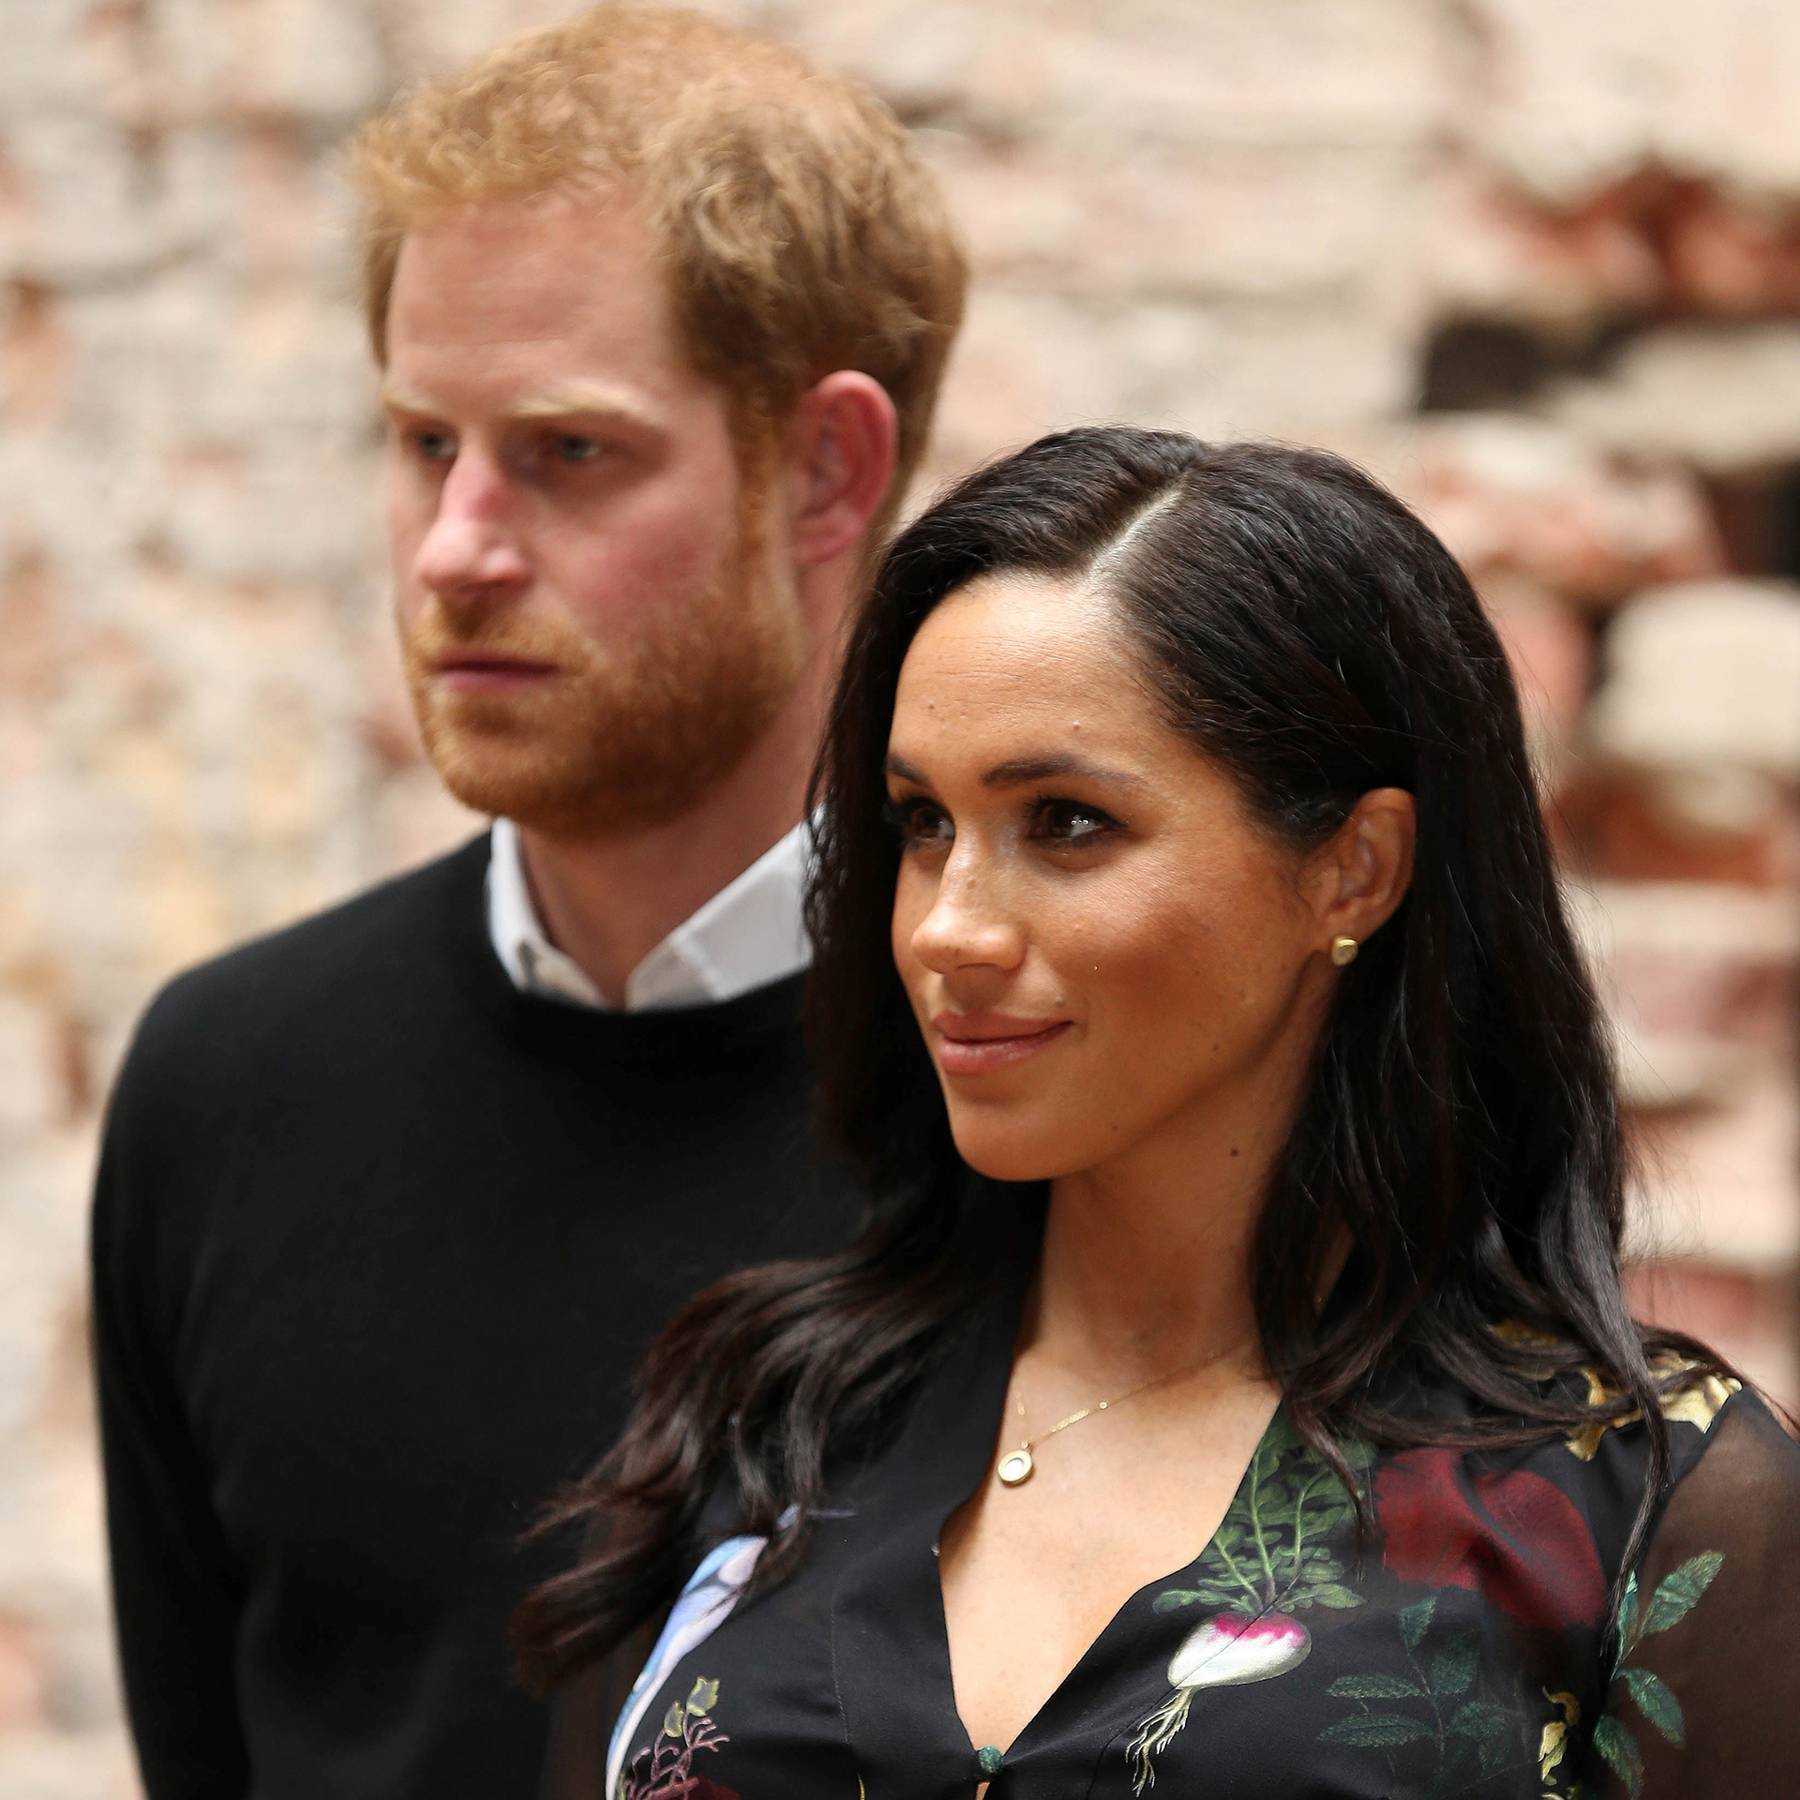 The Duke and Duchess of Sussex may choose an American school for new royal baby